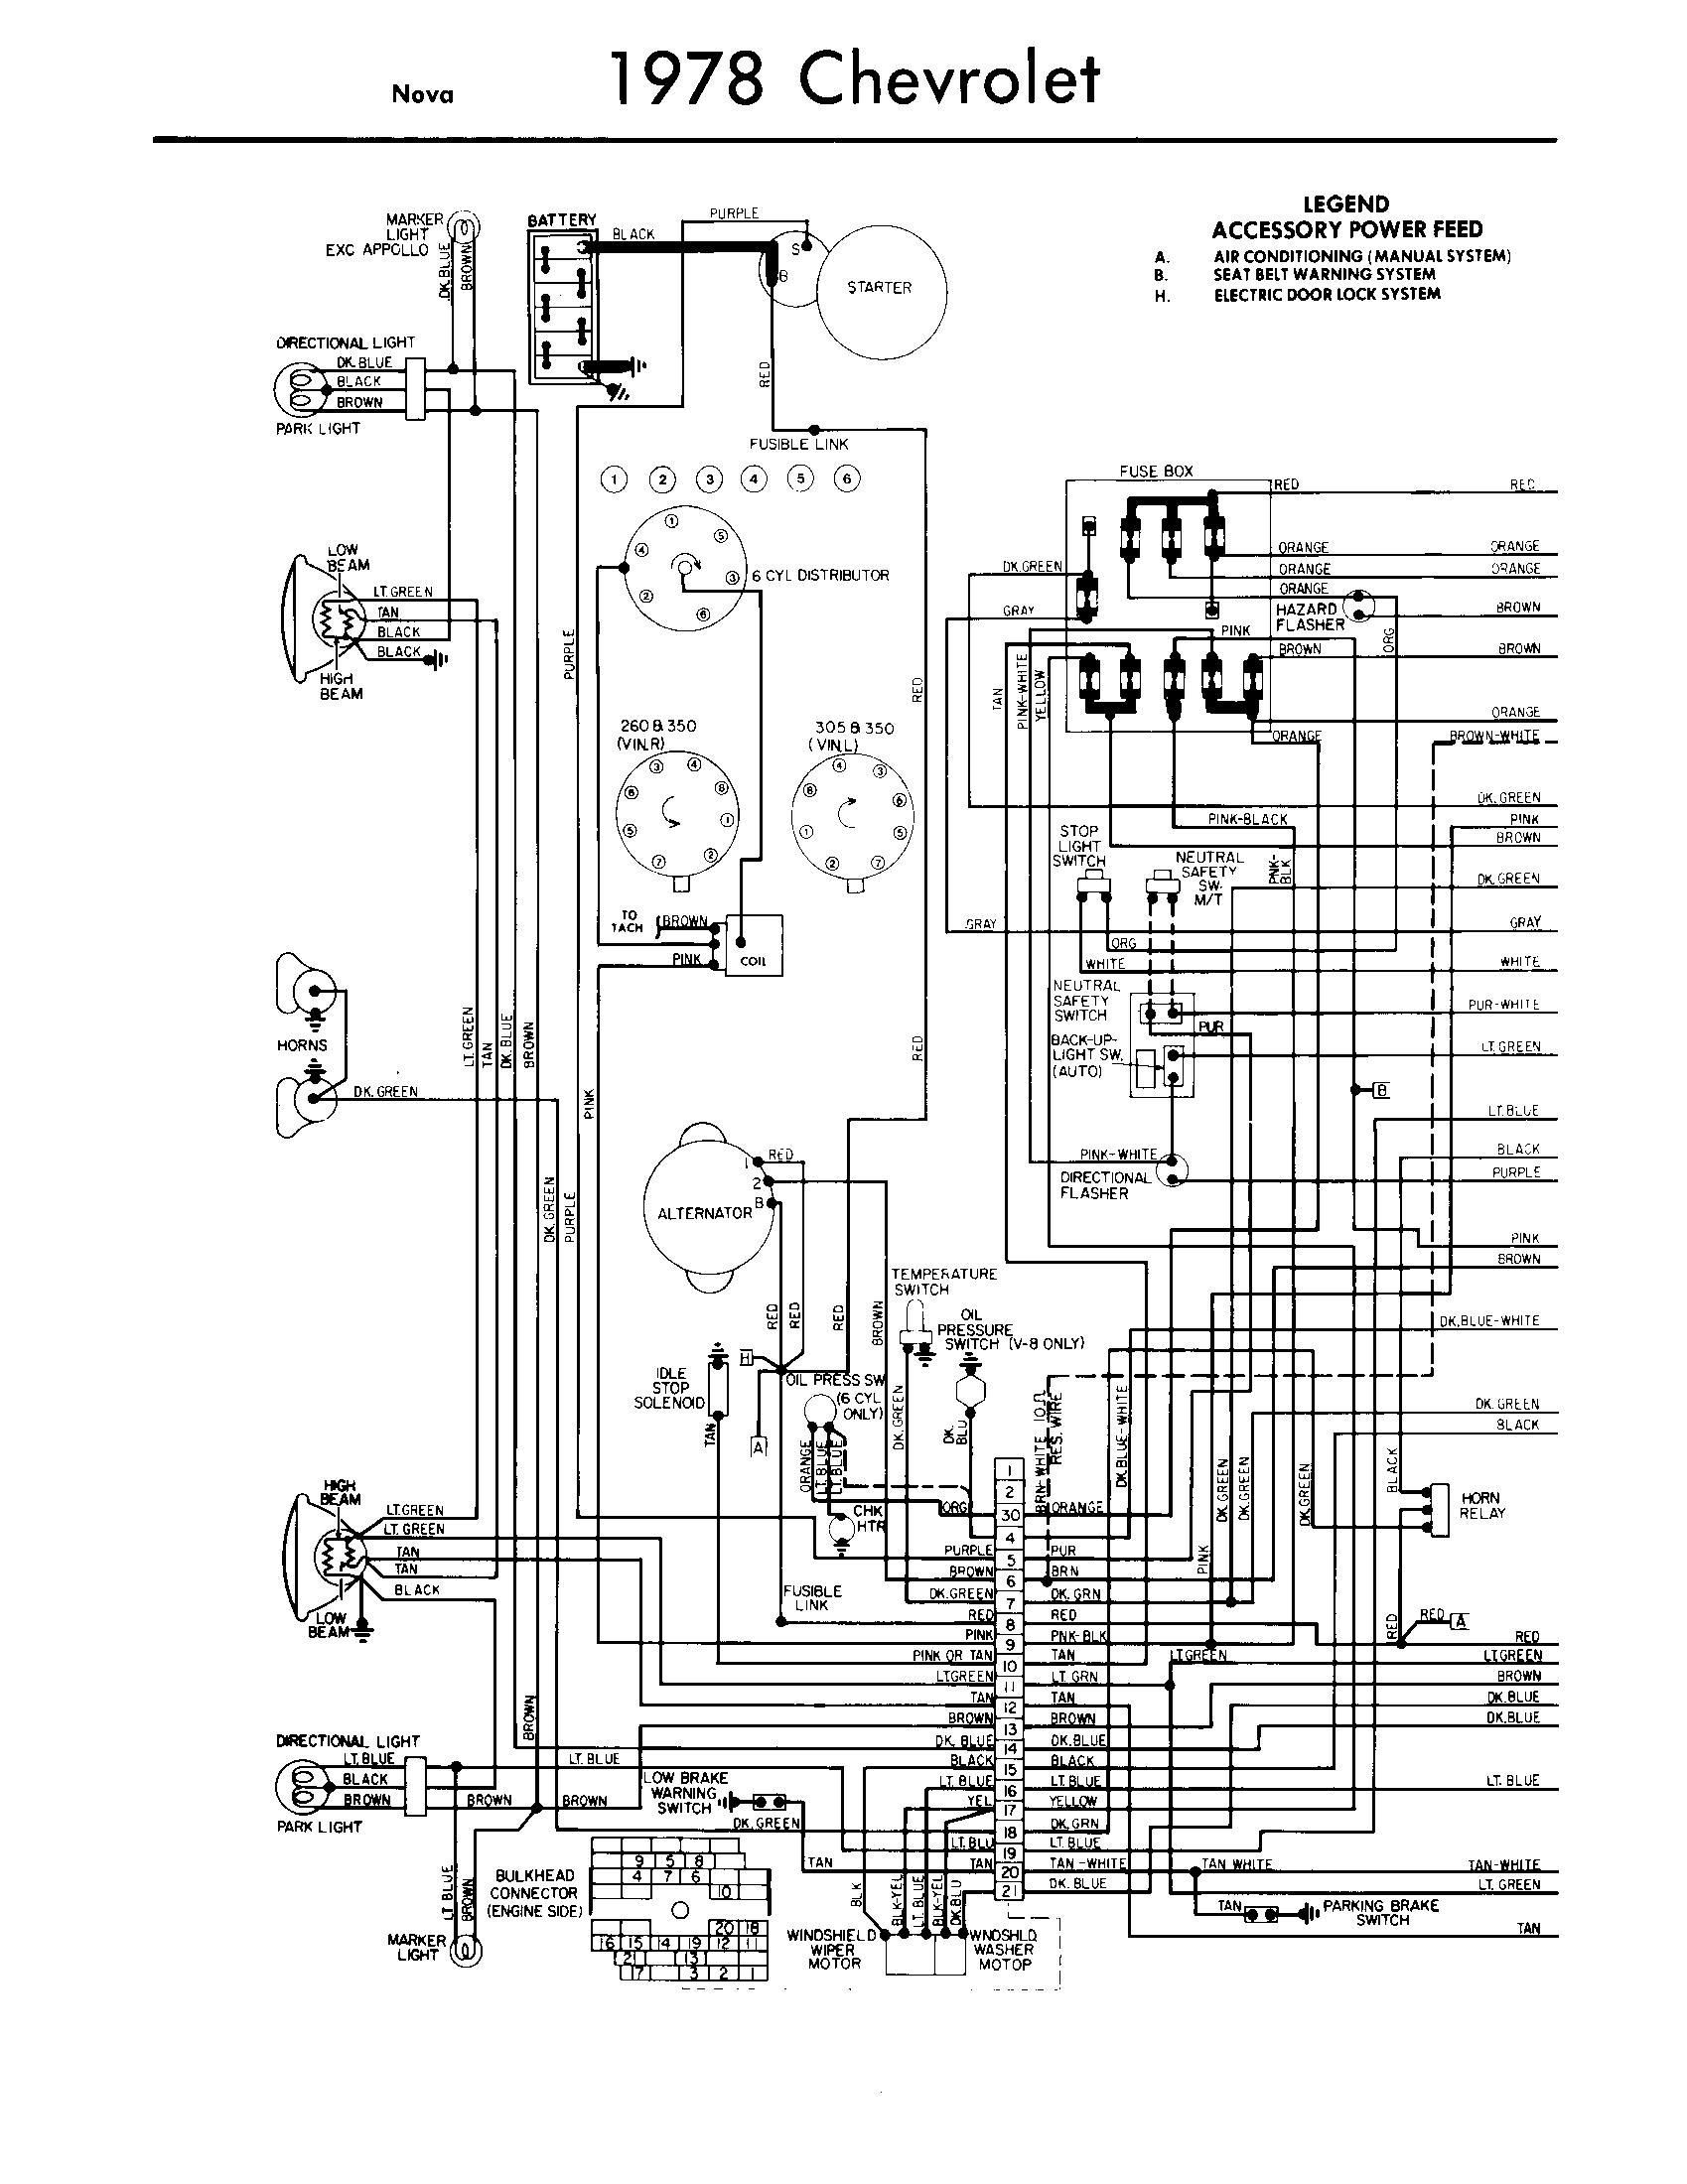 2001 S10 Rear Lights Wiring Diagram  Chevrolet S-10 Questions